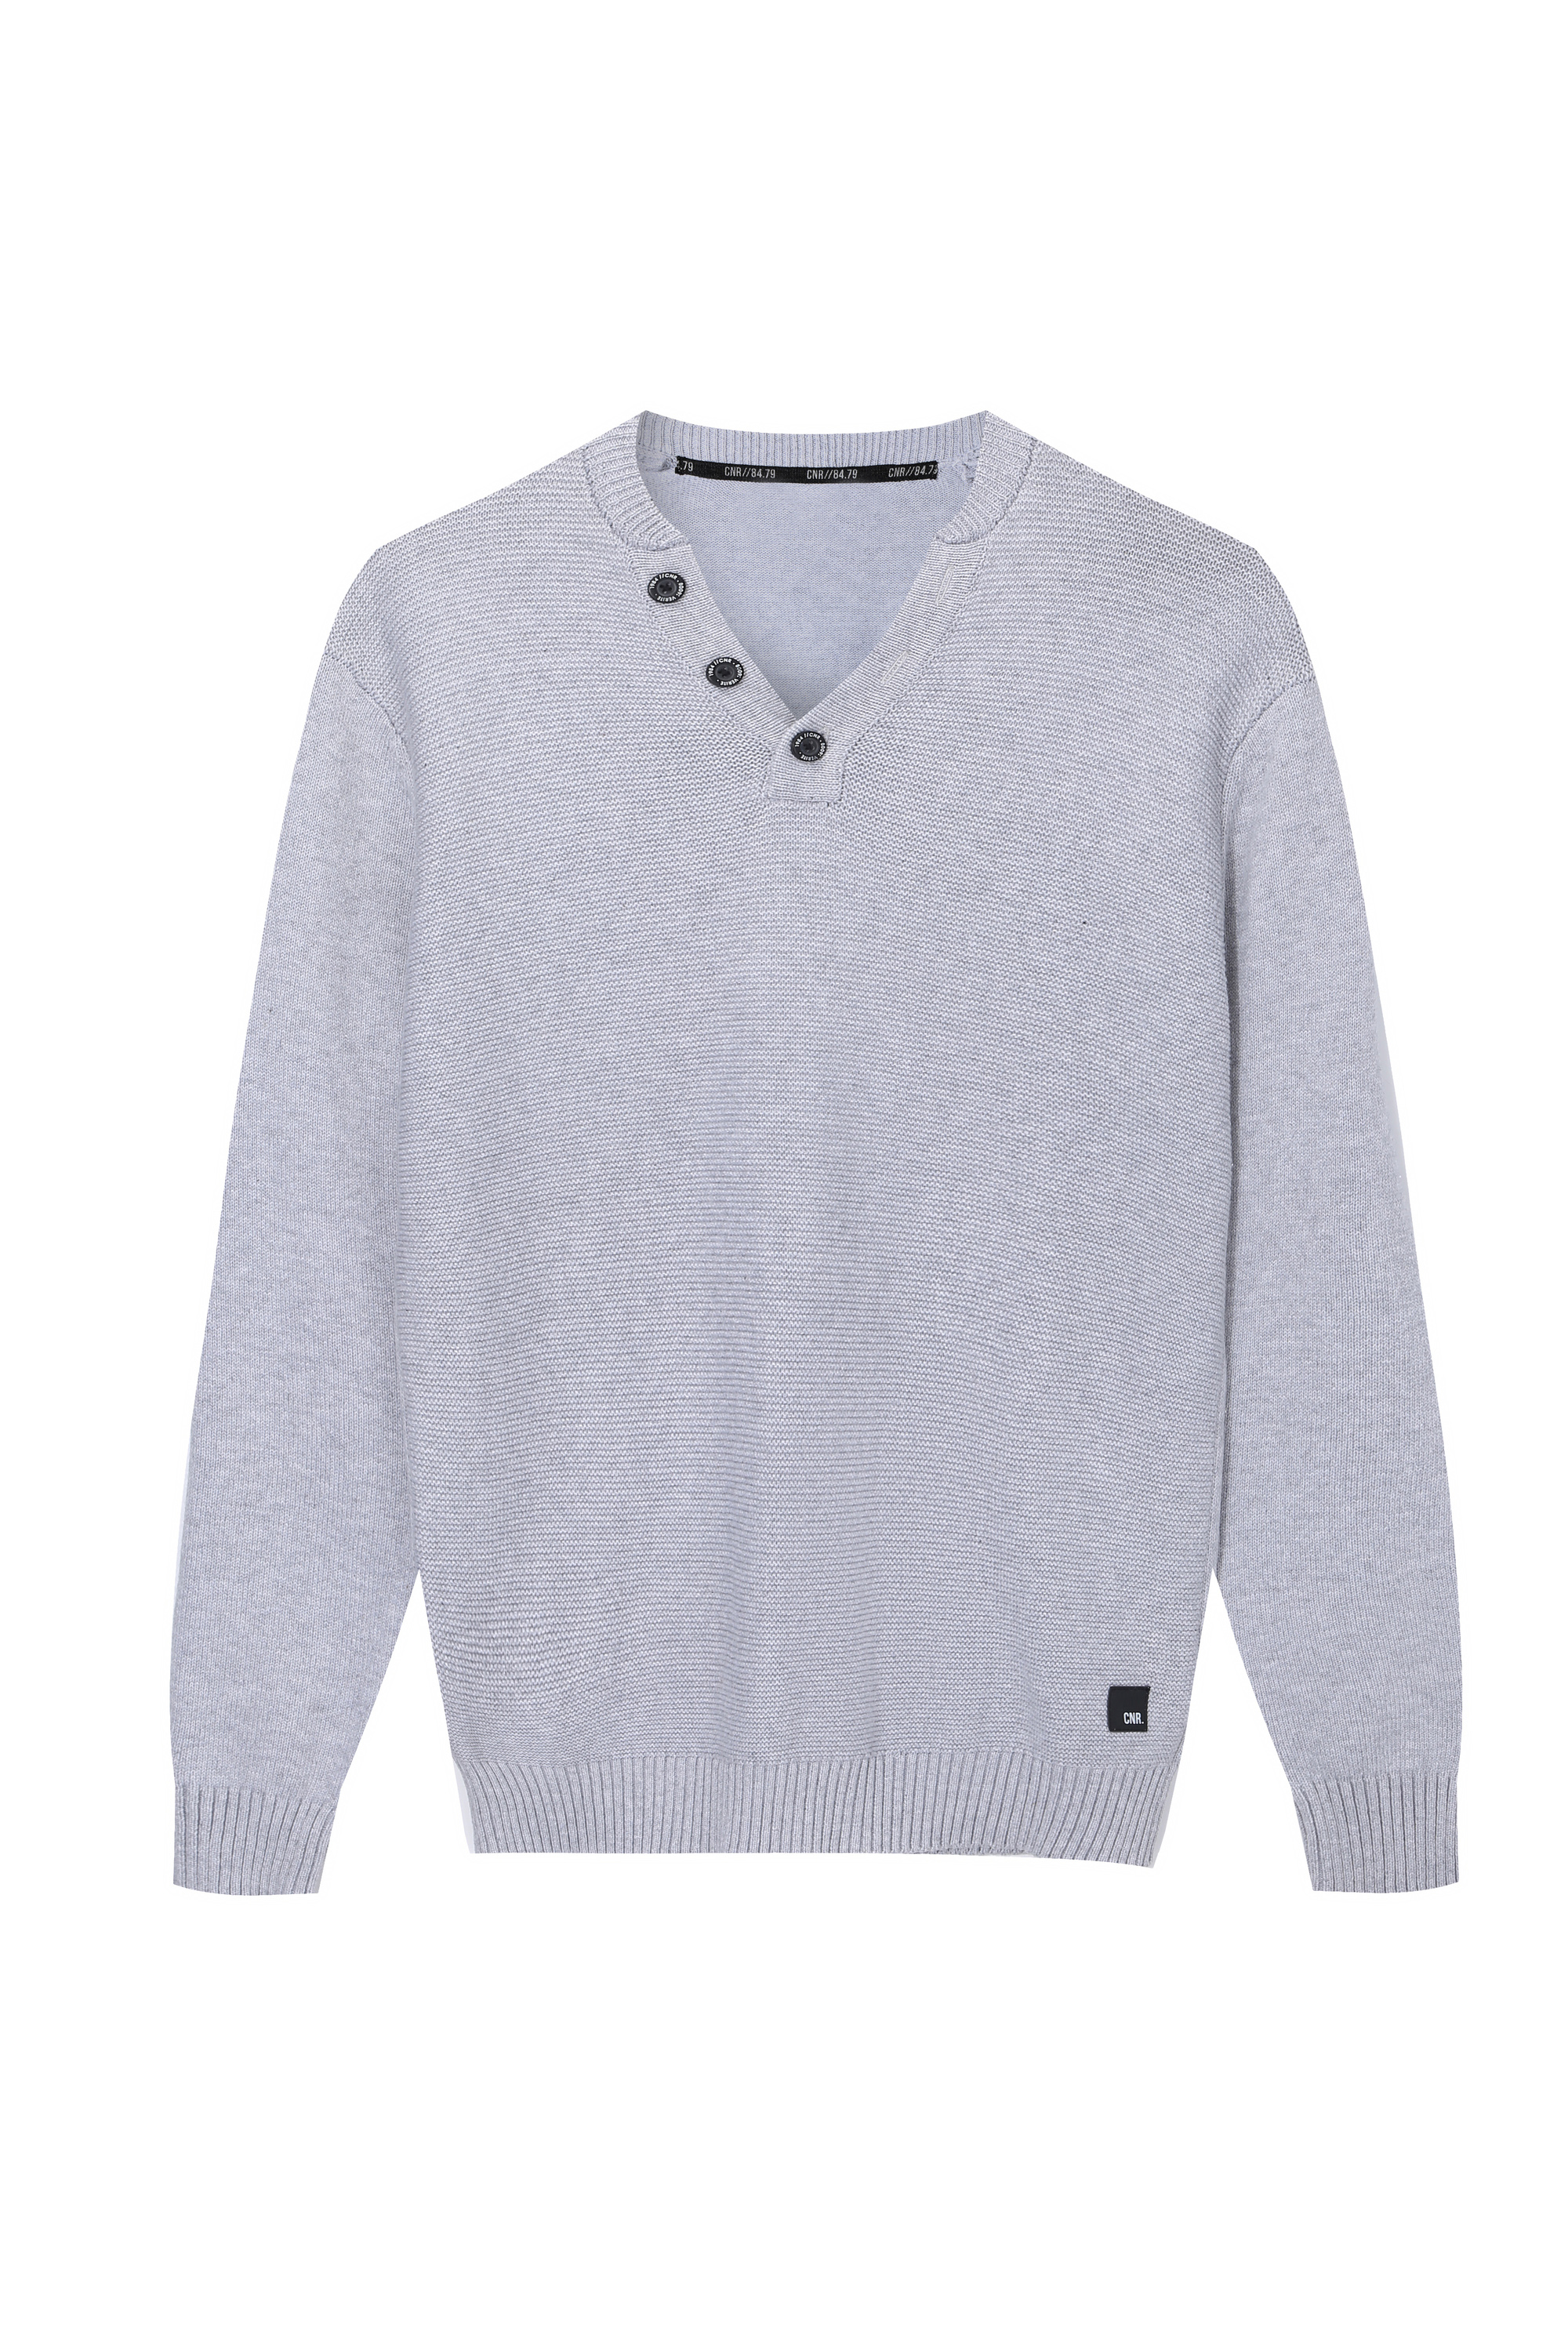 Men's Knitted Henley button neck Sweater